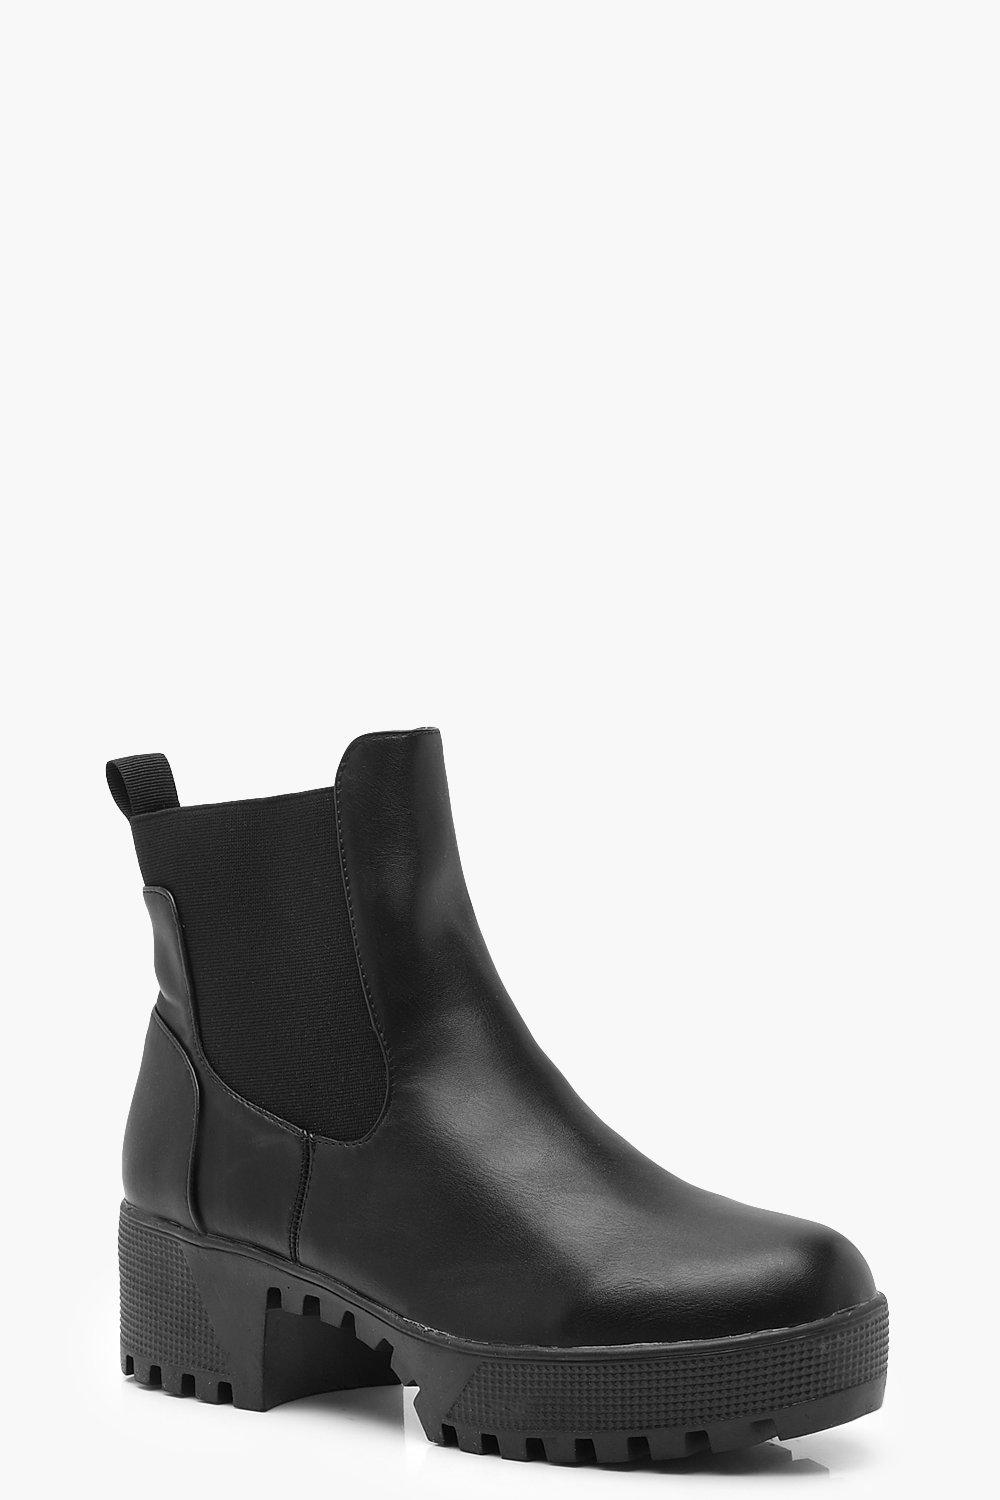 cbe146ad8d4b Womens Black Chunky Sole Chelsea Boots. Hover to zoom